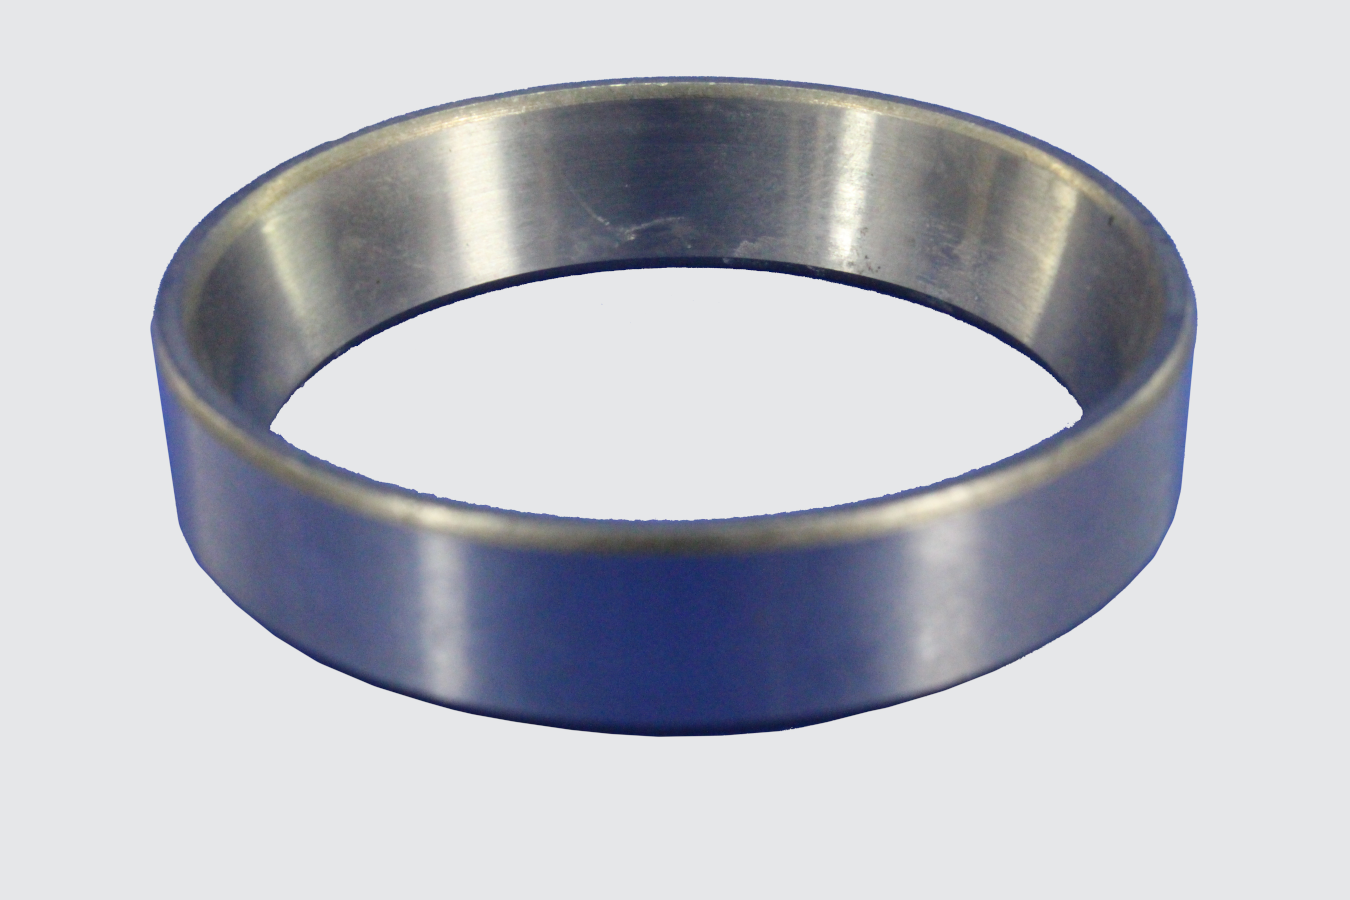 35315183 - CUP, OUTER BEARING